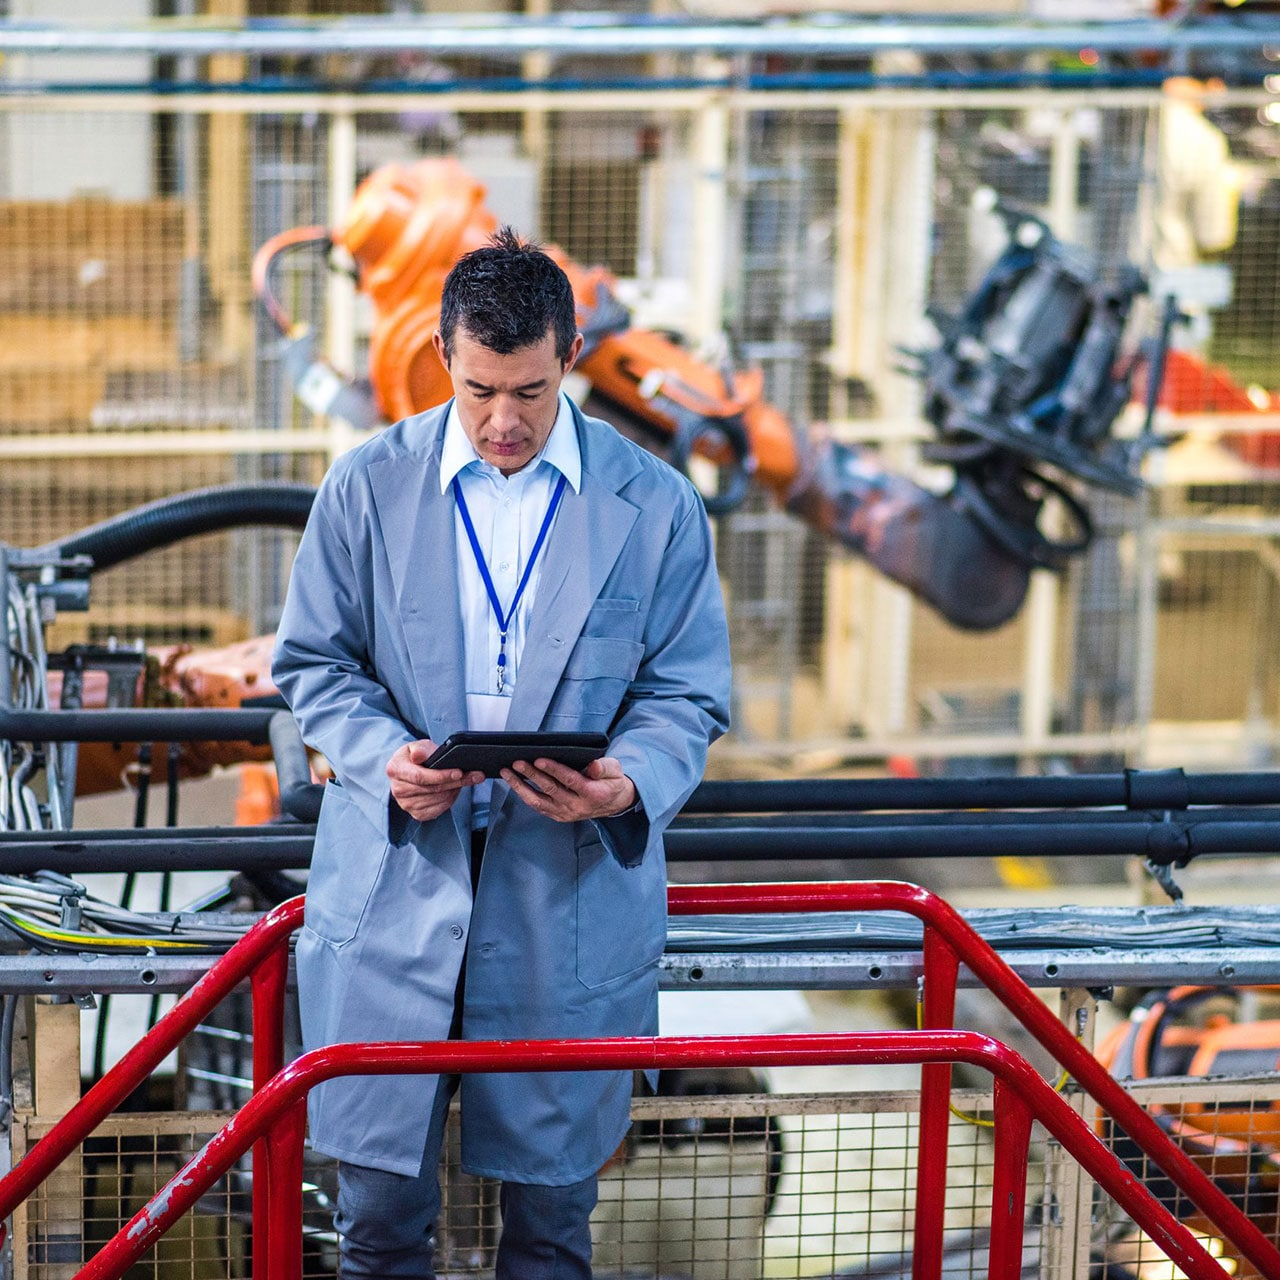 person holding tablet on floor of automated manufacturing warehouse